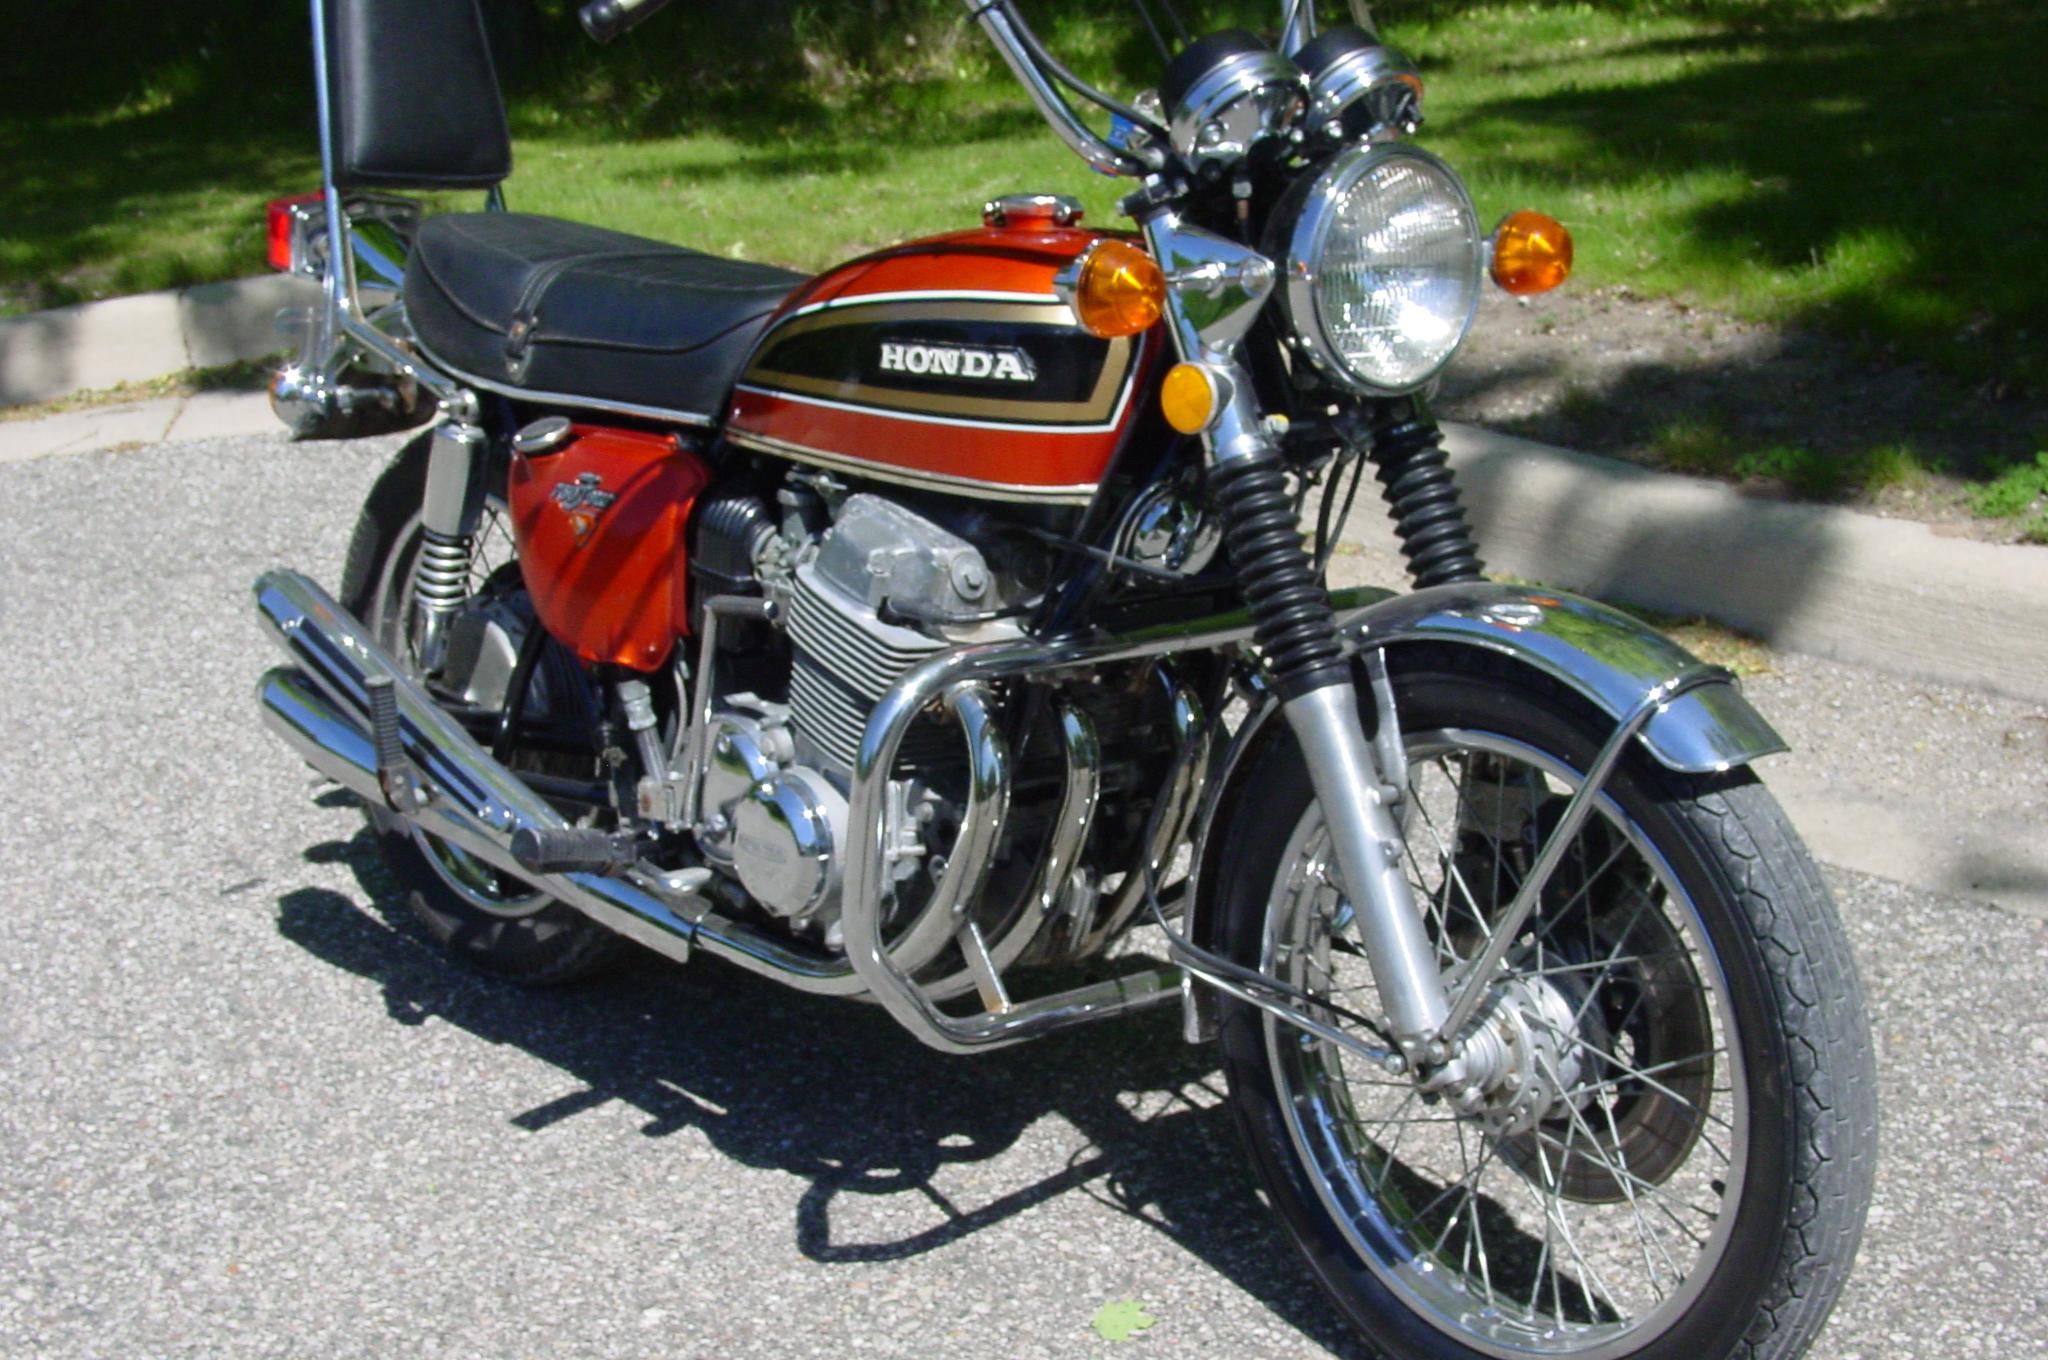 Craigslist Motorcycle Las Vegas - 2019-2020 New Upcoming Cars by